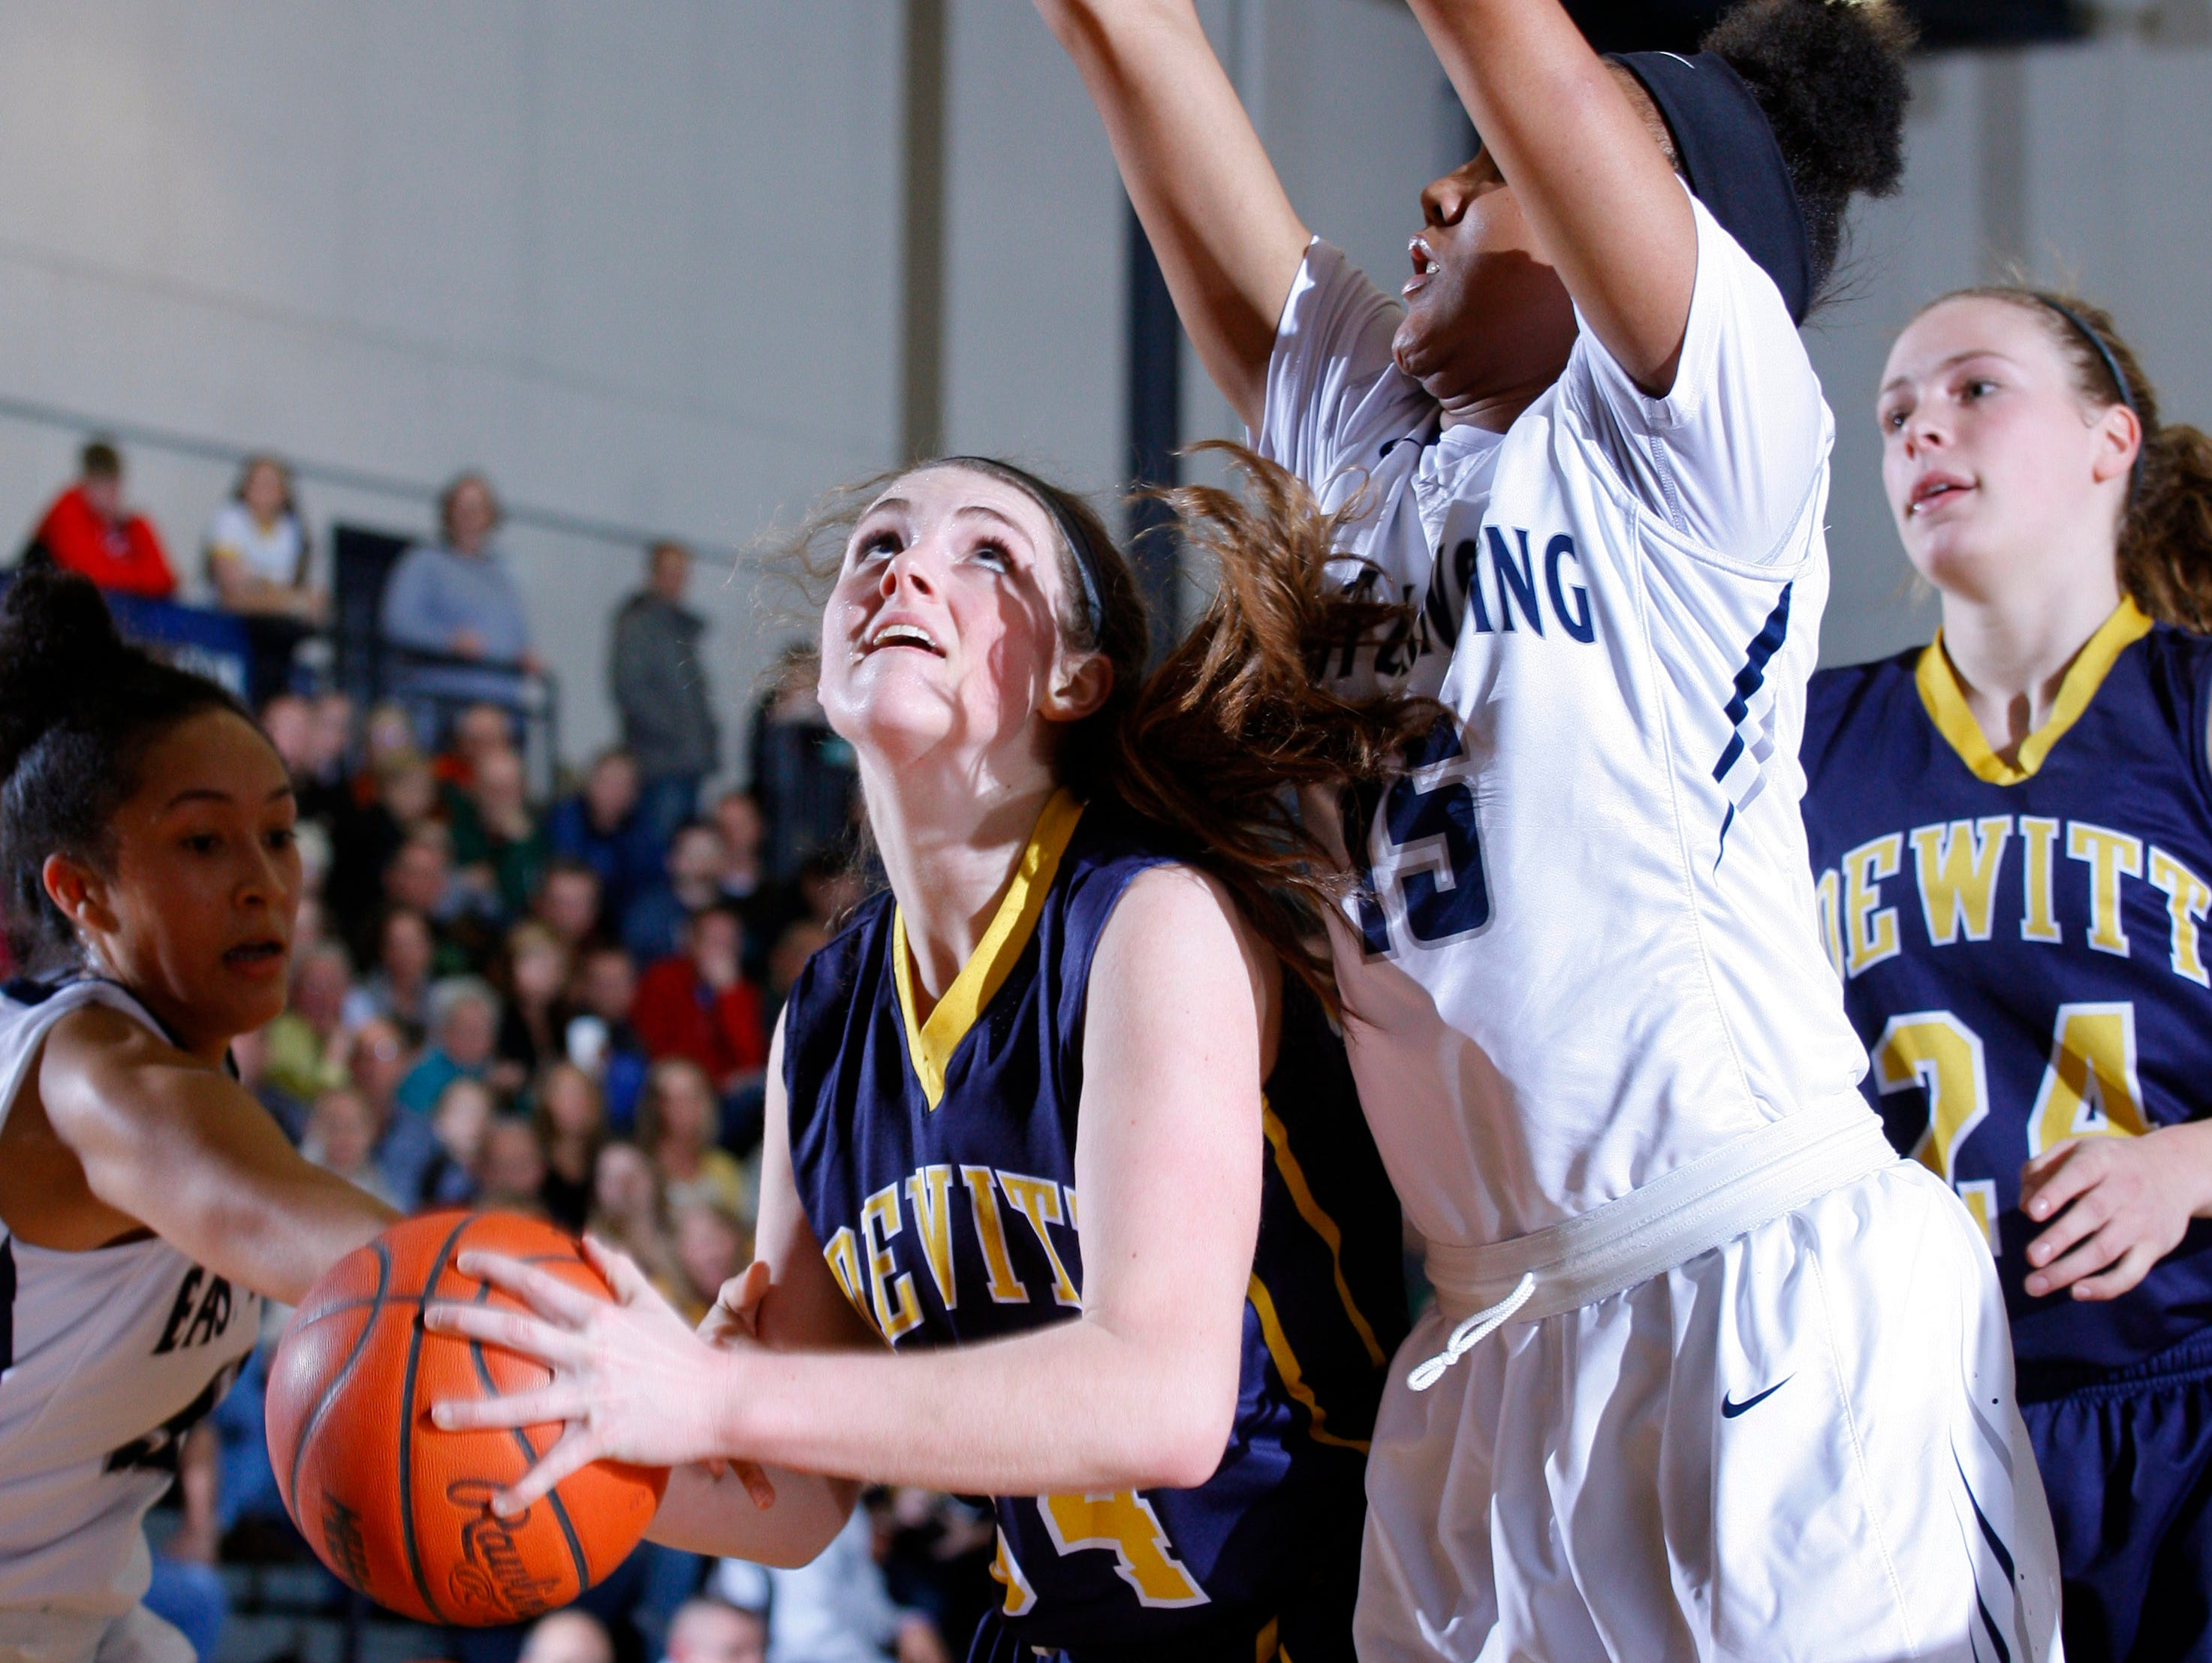 DeWitt's Grace George, center, looks for a shot against the defense of East Lansing's Jaida Hampton, right, and Aaliyah Nye, left, during their district final game Friday, March 3, 2017, in East Lansing, Mich. East Lansing won 48-47.